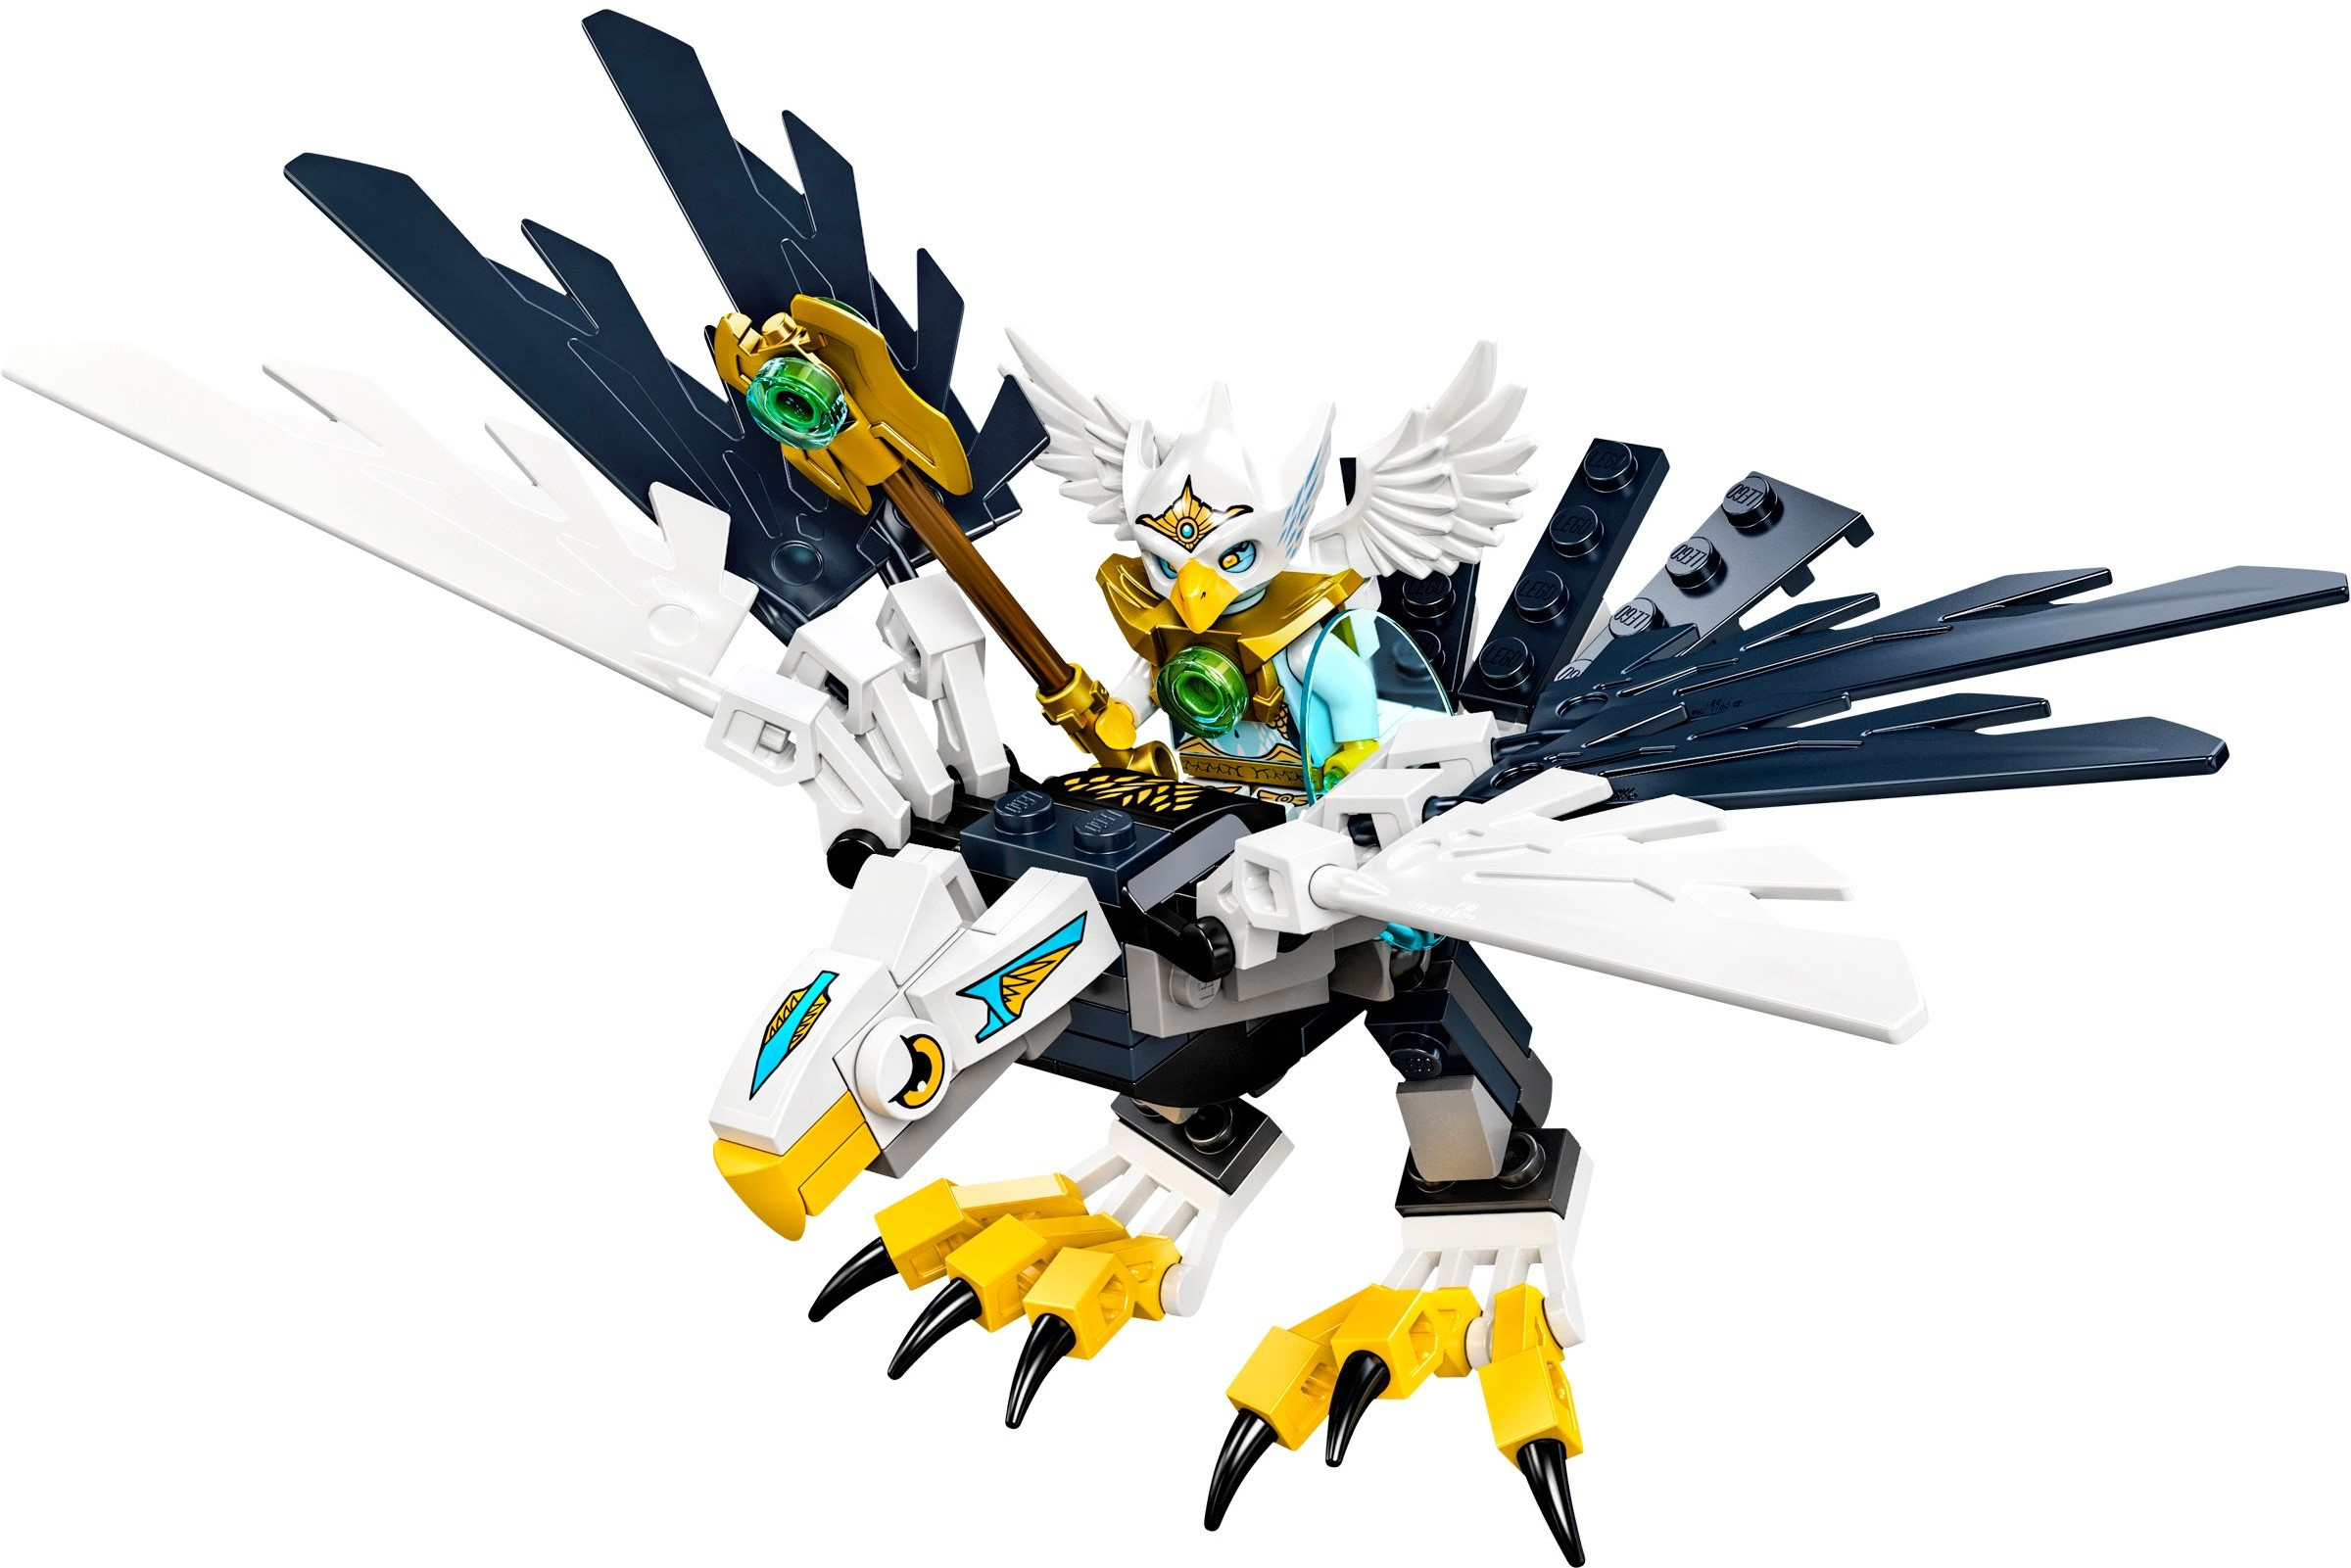 lego chima eagle legend beast -#main